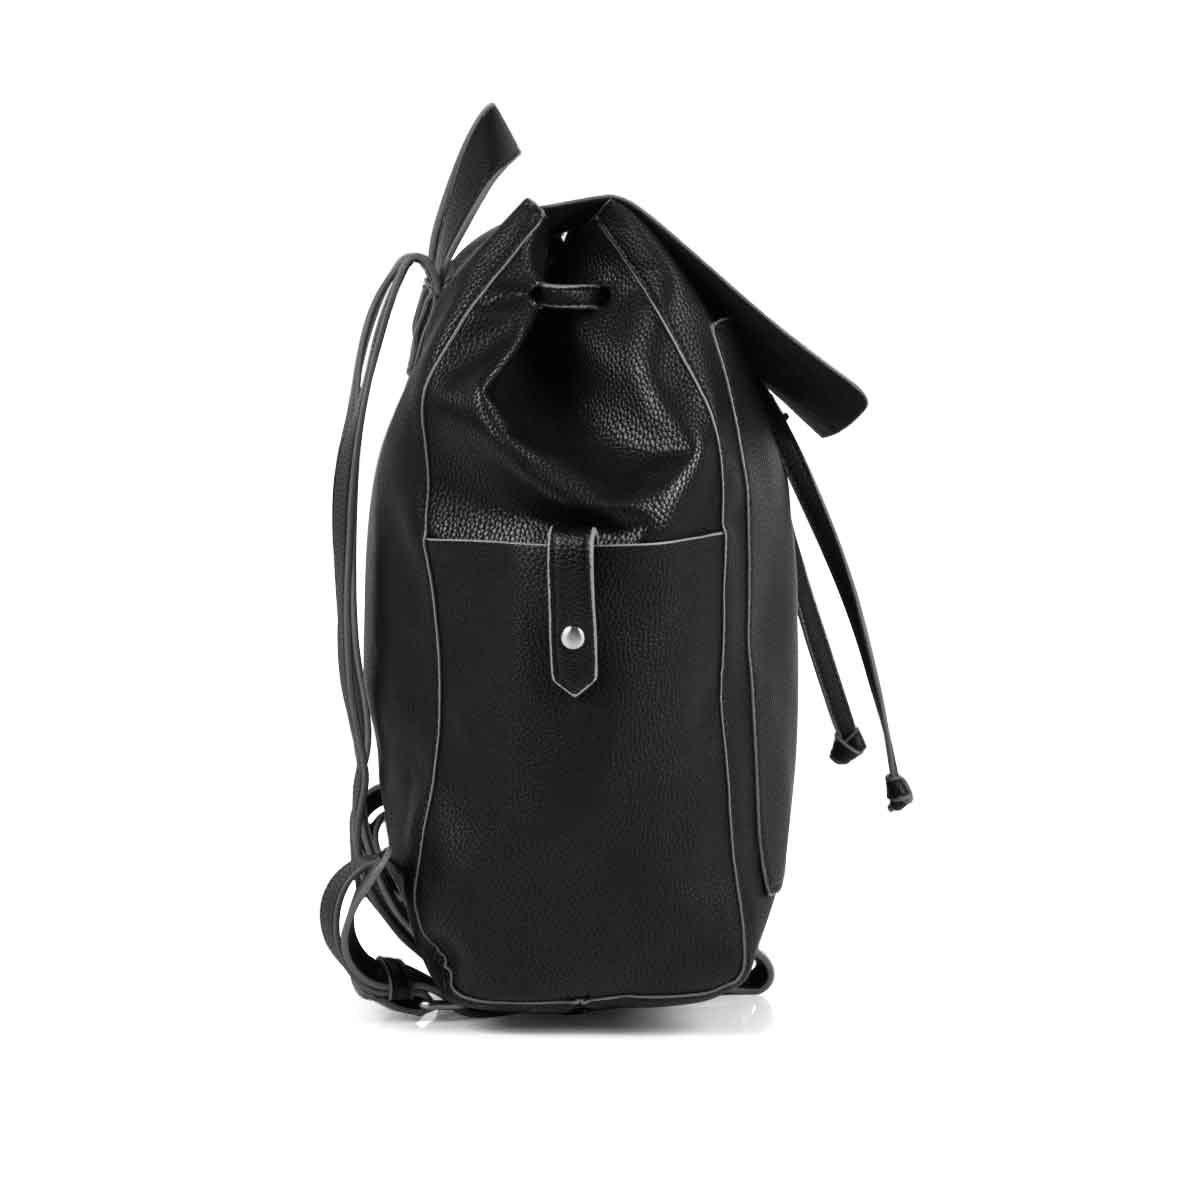 Lds blk draw string w/flap backpack